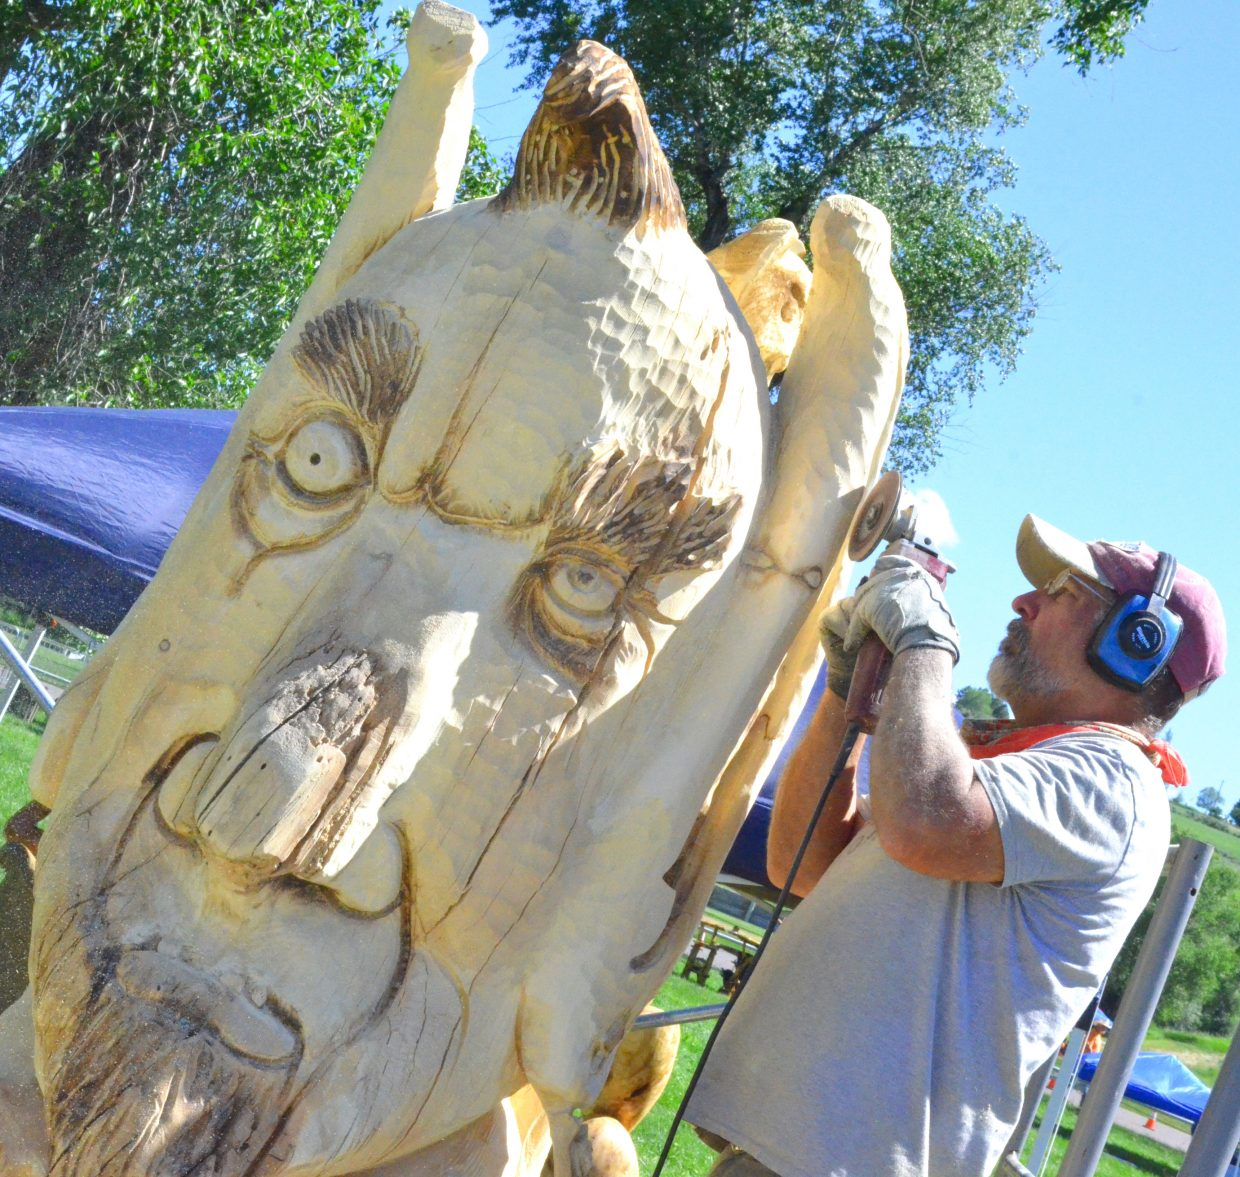 """Salt Lake City's David Mitchell focuses on the intricate details of """"The Magician"""" Friday as part of Whittle the Wood Rendezvous. The 11 carvers will finish their works Saturday afternoon, with prizes being given out later in the day."""